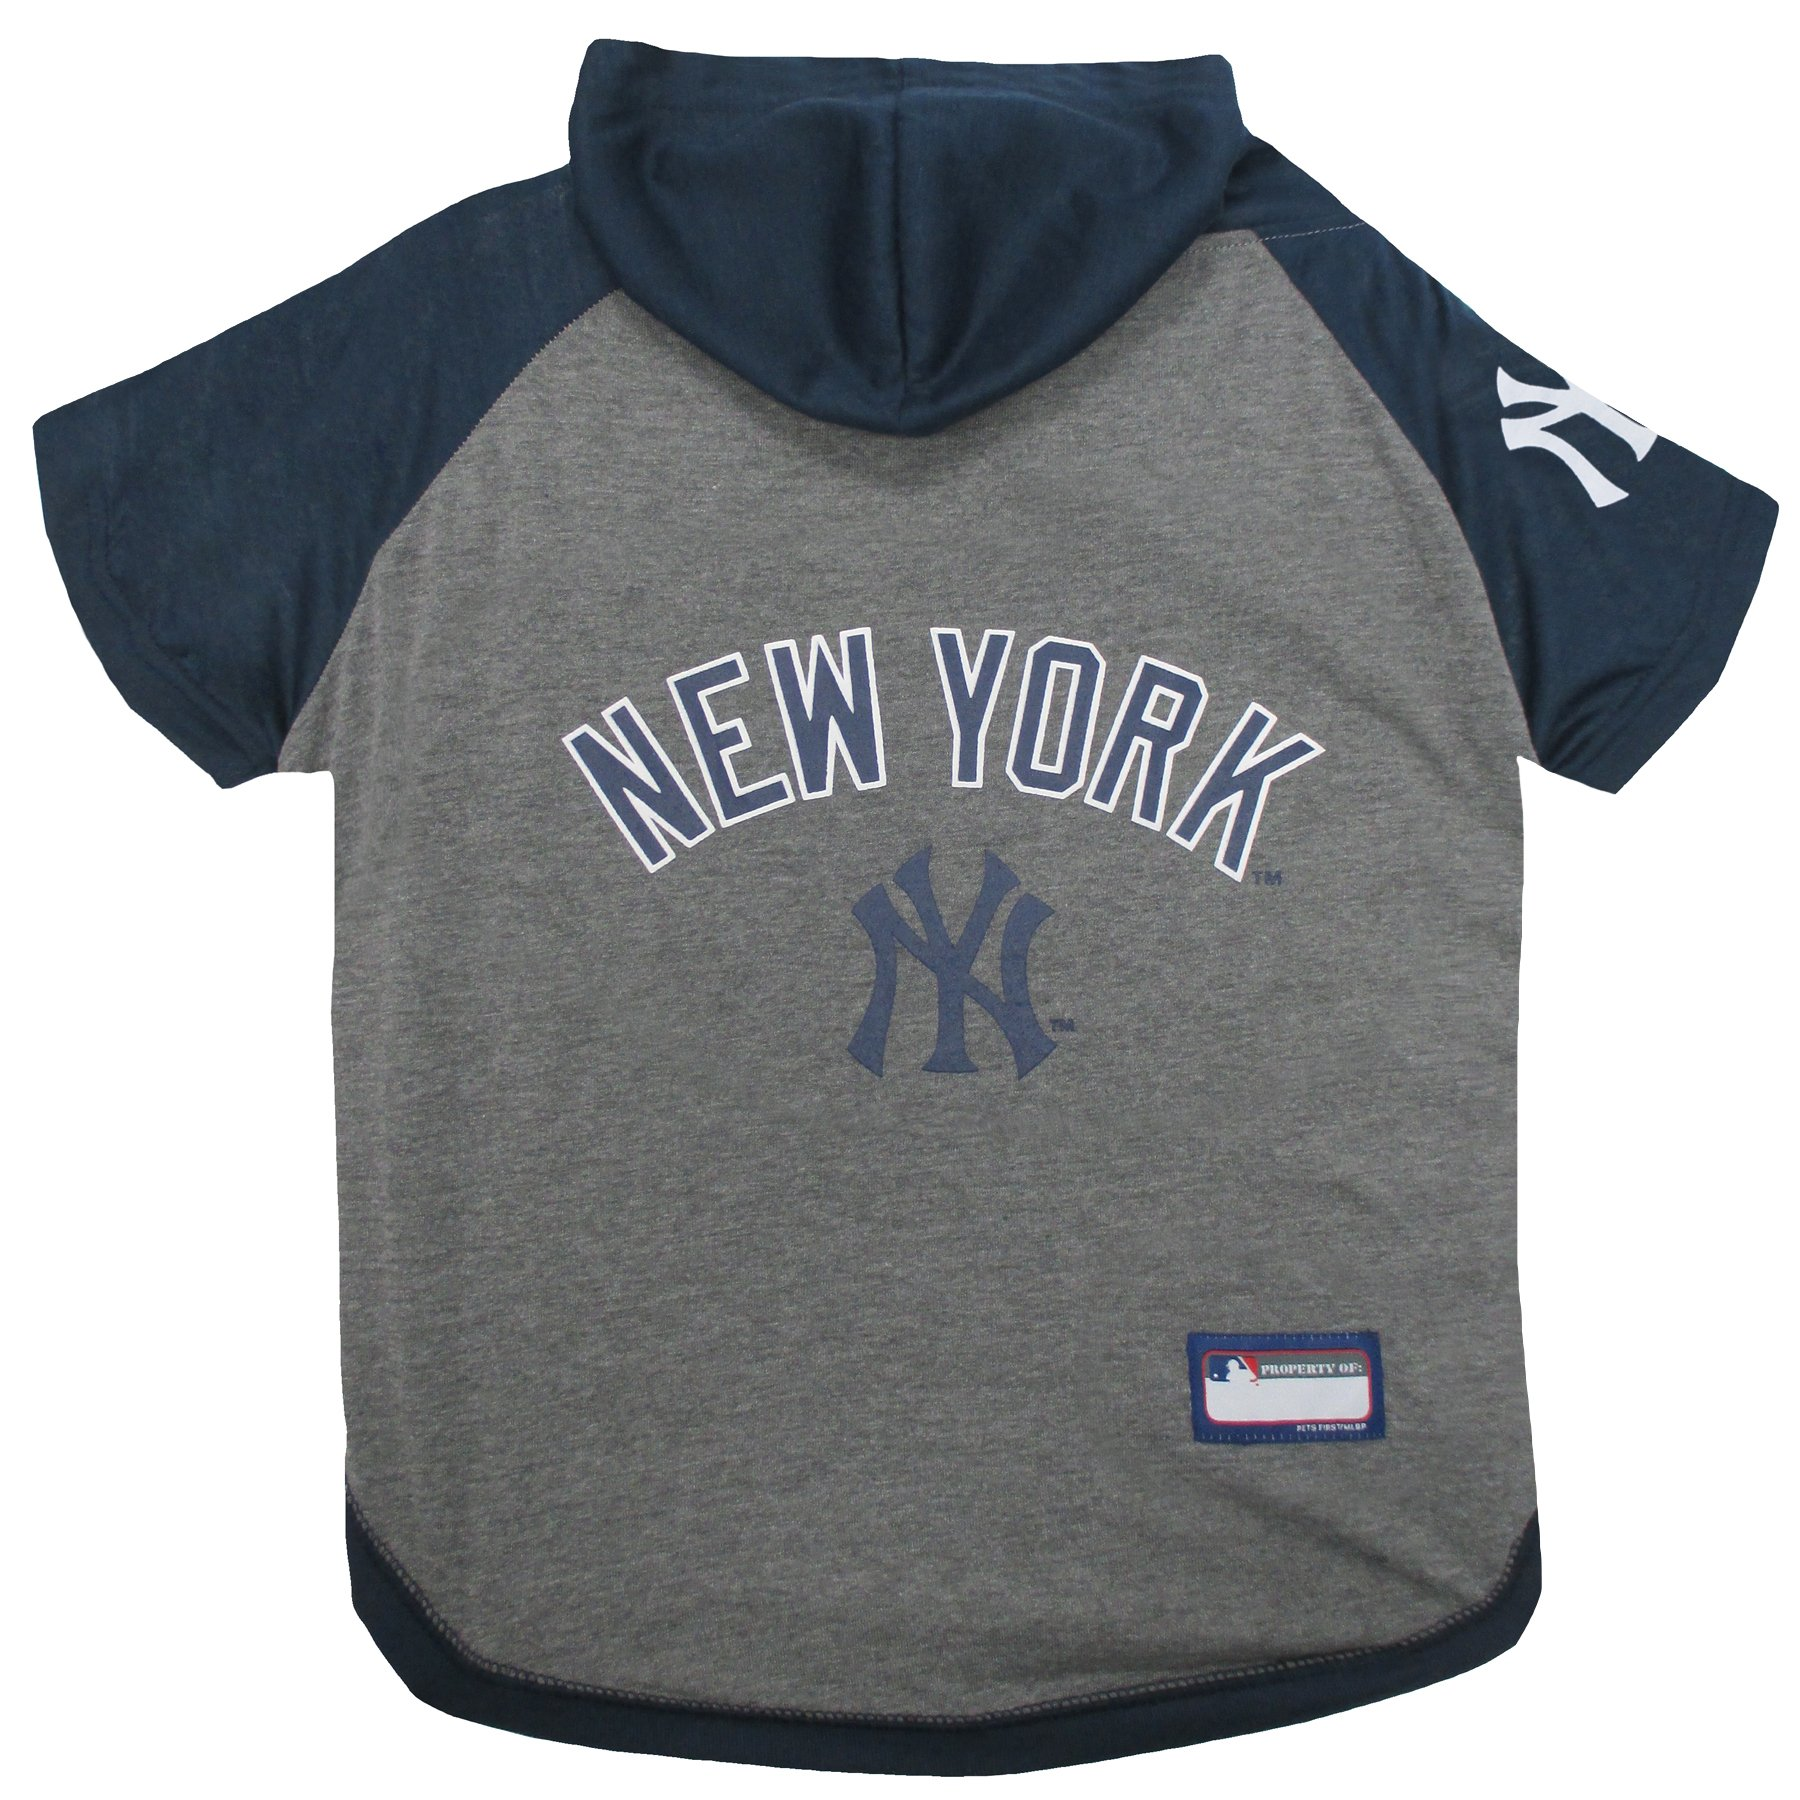 Pets First MLB Hoodie For Dogs & Cats - NEW YORK YANKEES Dog HOODED T-Shirt, Large. - MLB Team Color HOODY